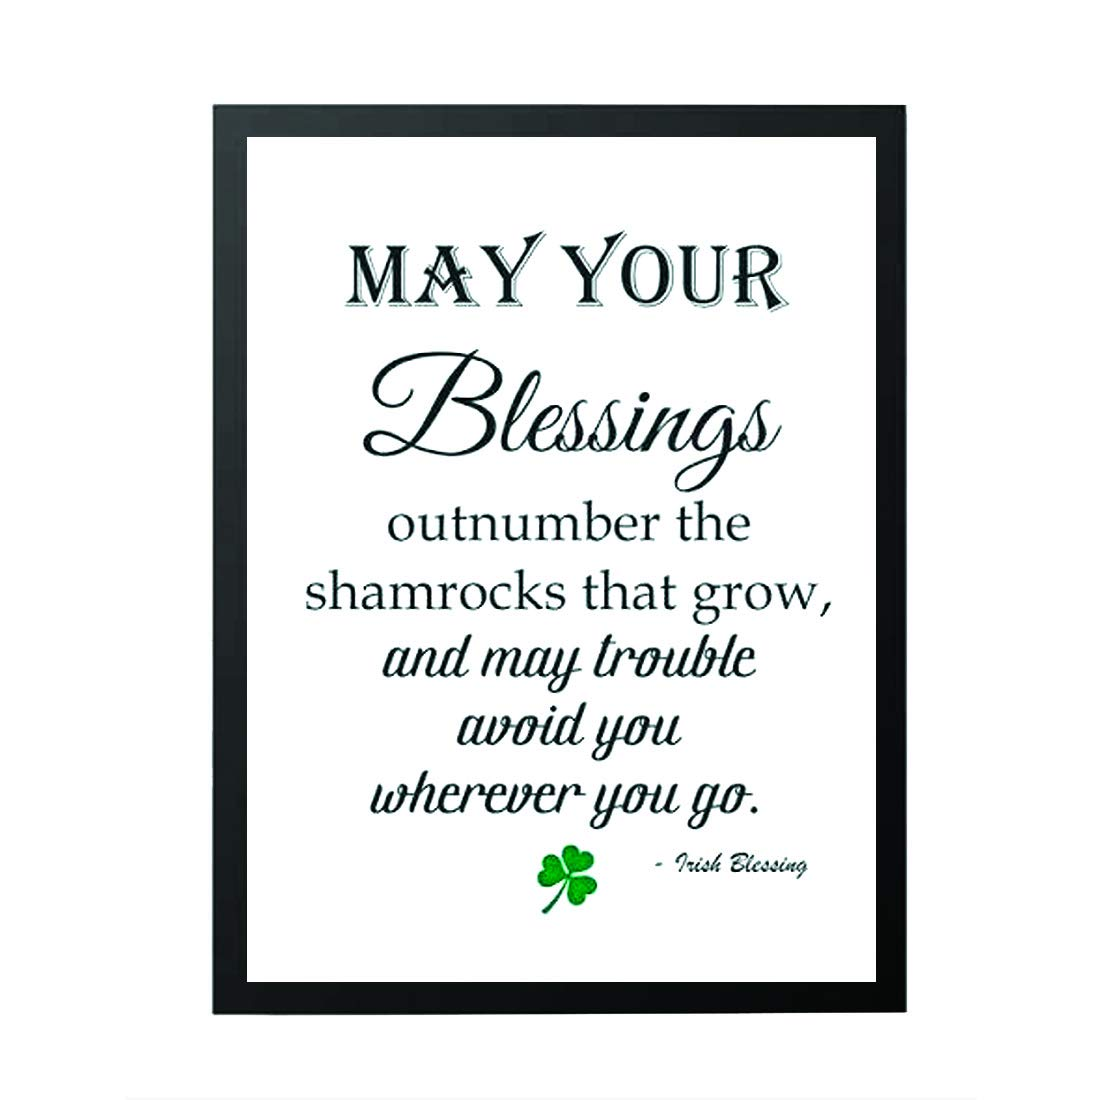 picture regarding Calligraphy Letters Printable identified as : St Patricks decor - May well your blessings